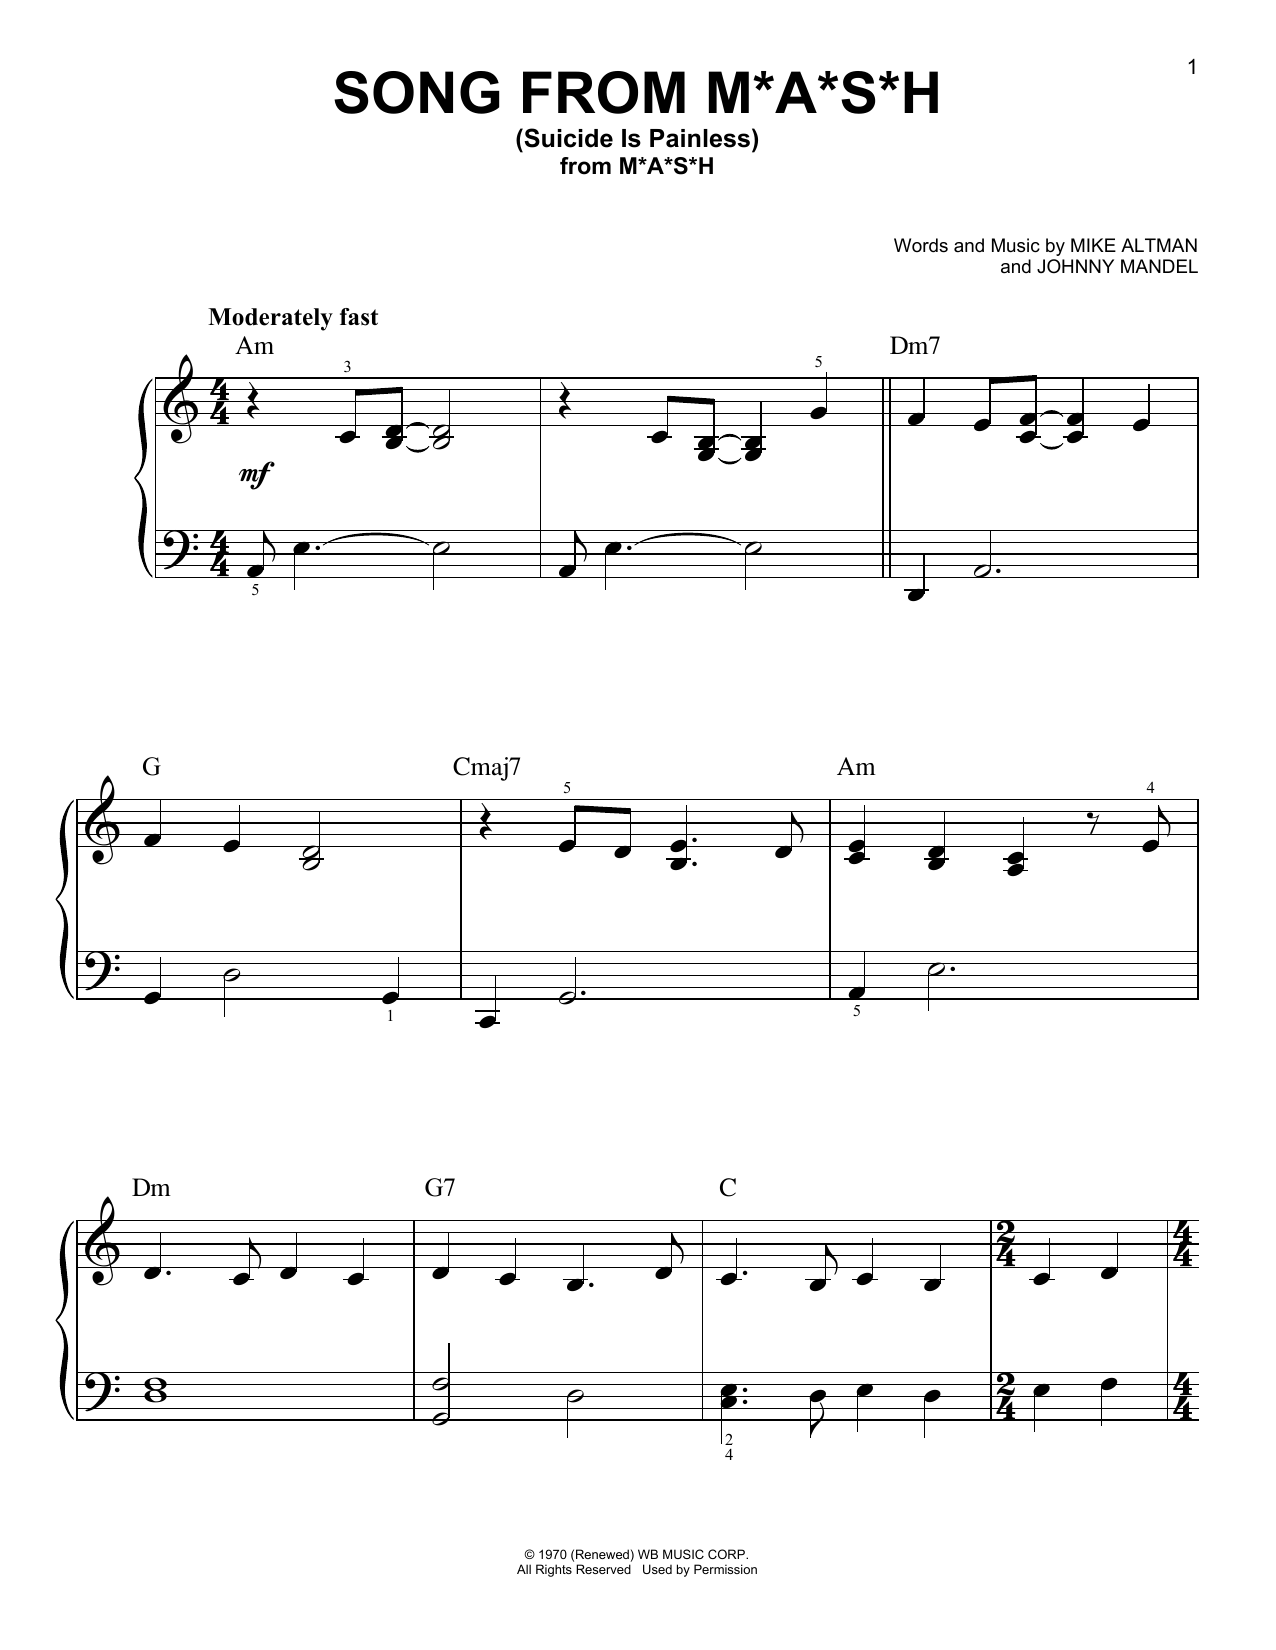 Song From M*A*S*H (Suicide Is Painless) (Very Easy Piano)